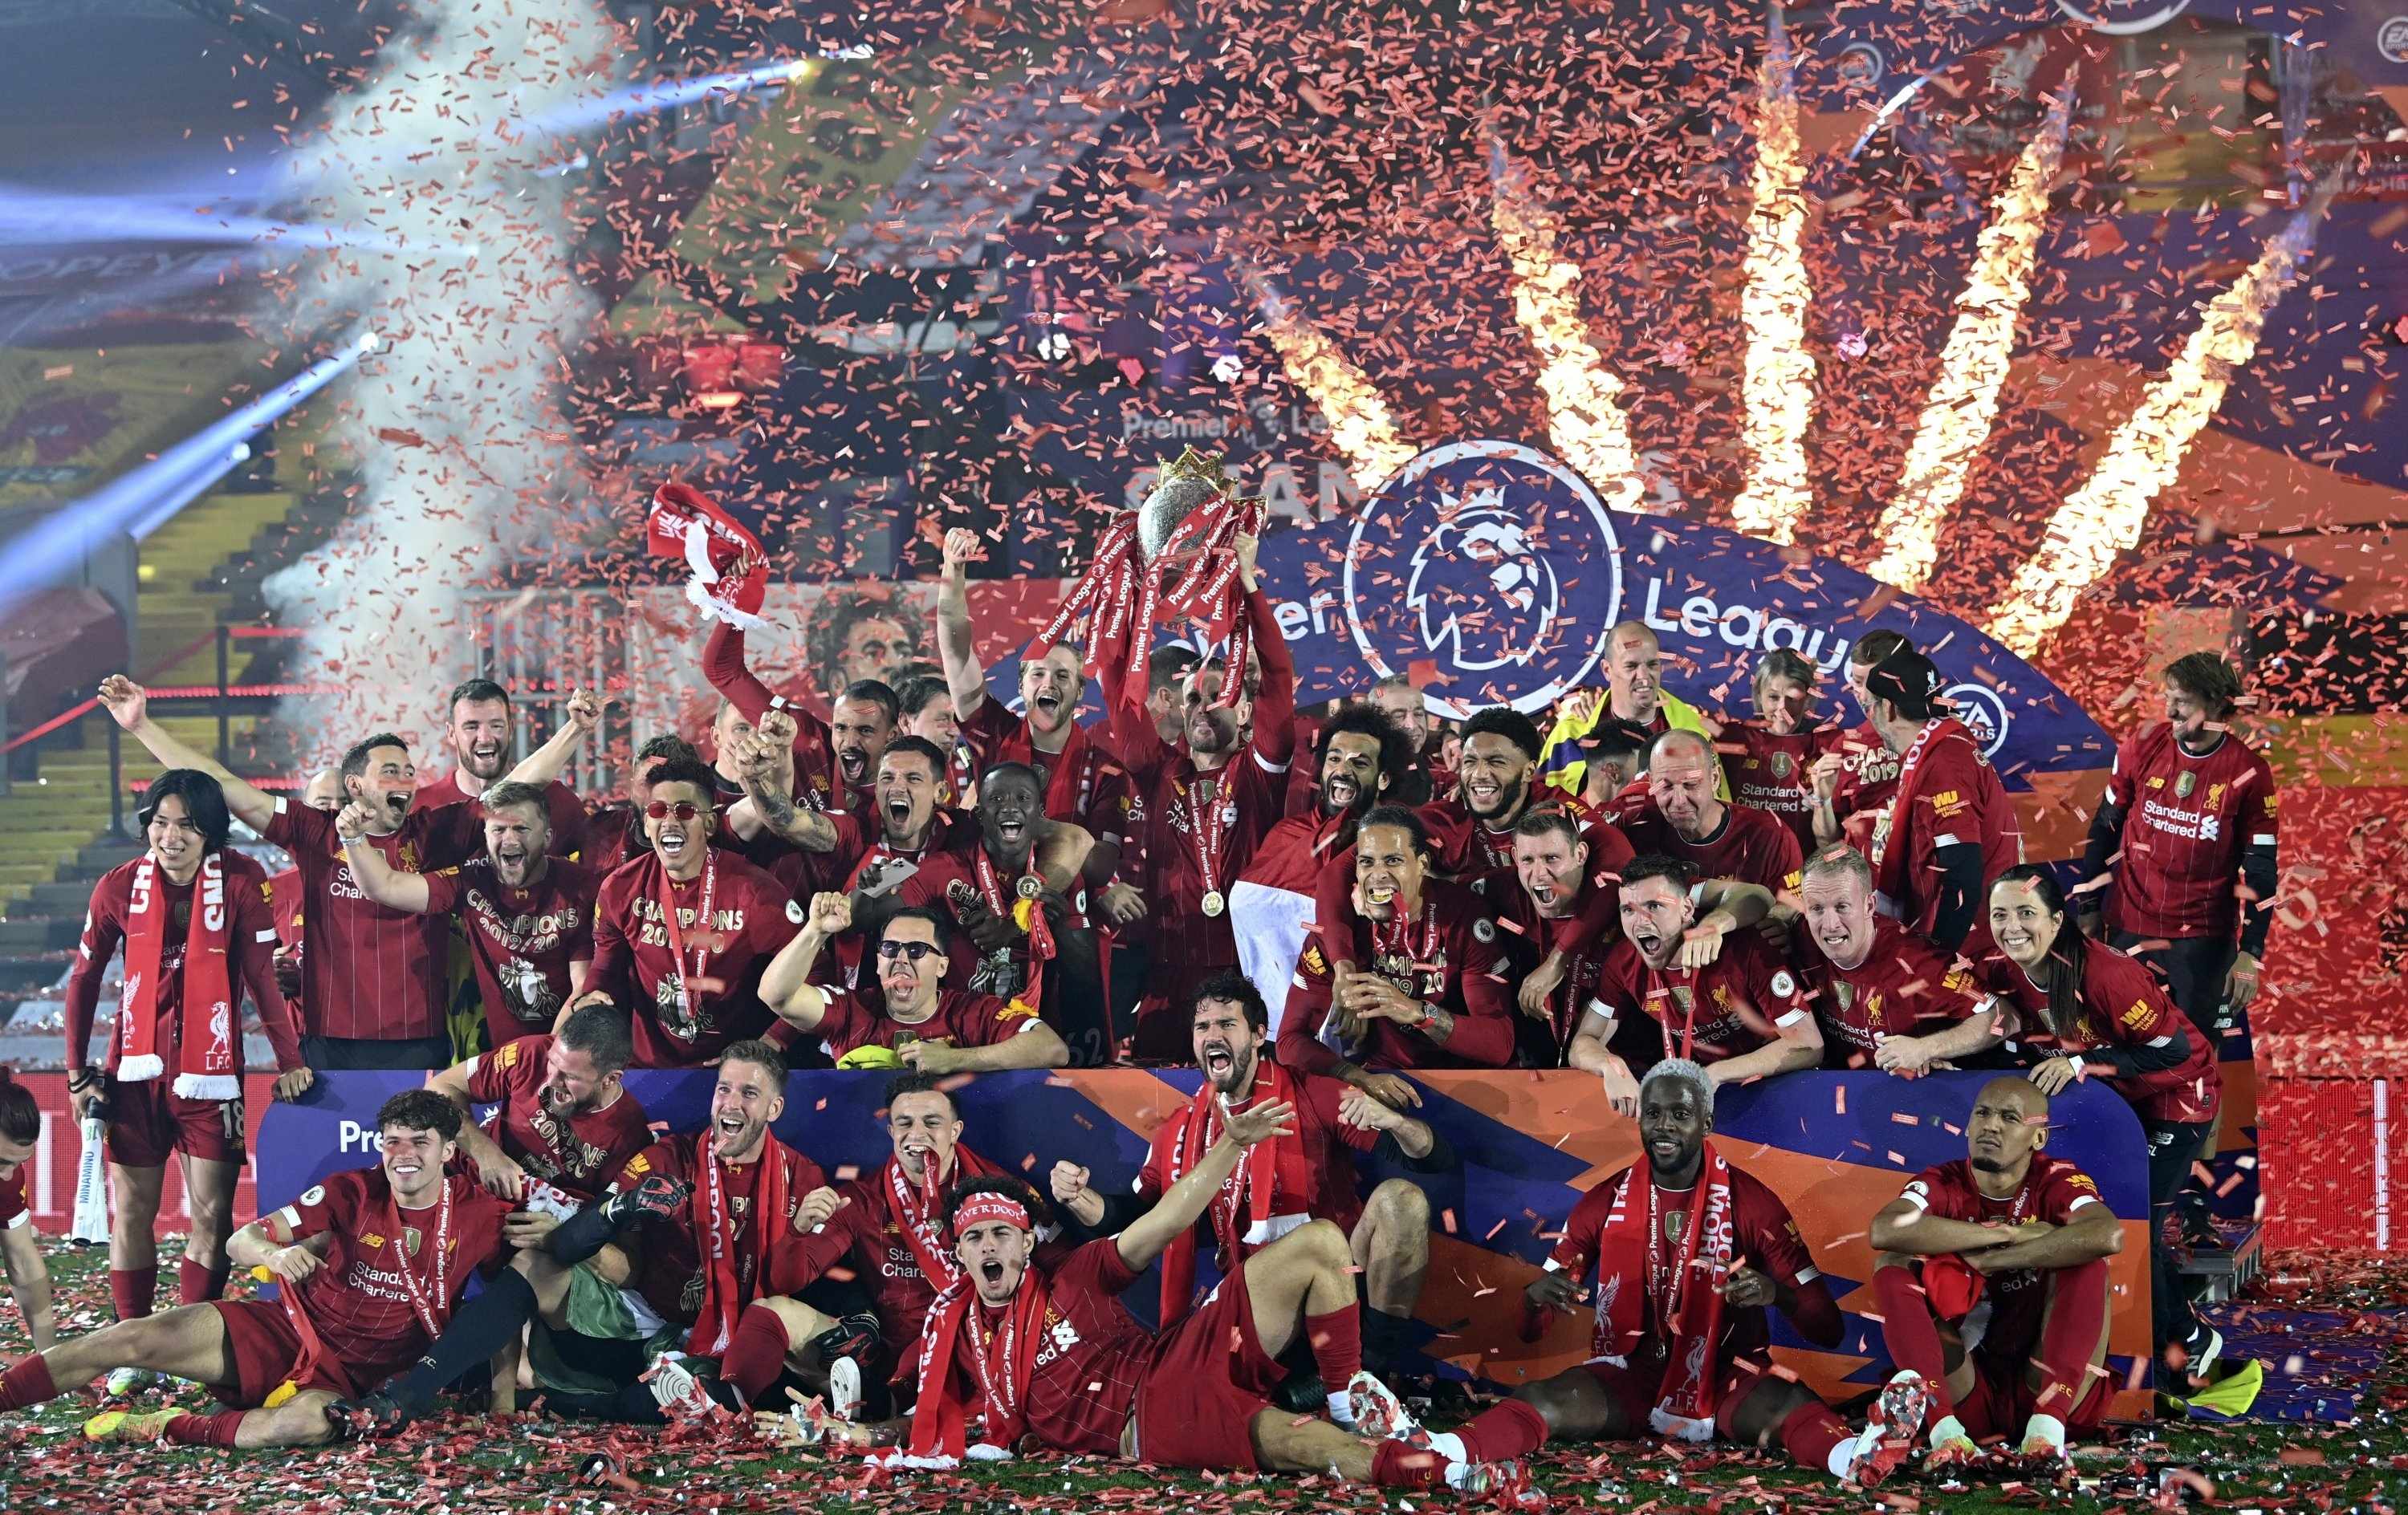 Liverpool players celebrate winning the Premier League with the trophy aloft in Liverpool, England, July 22, 2020. (AP Photo)